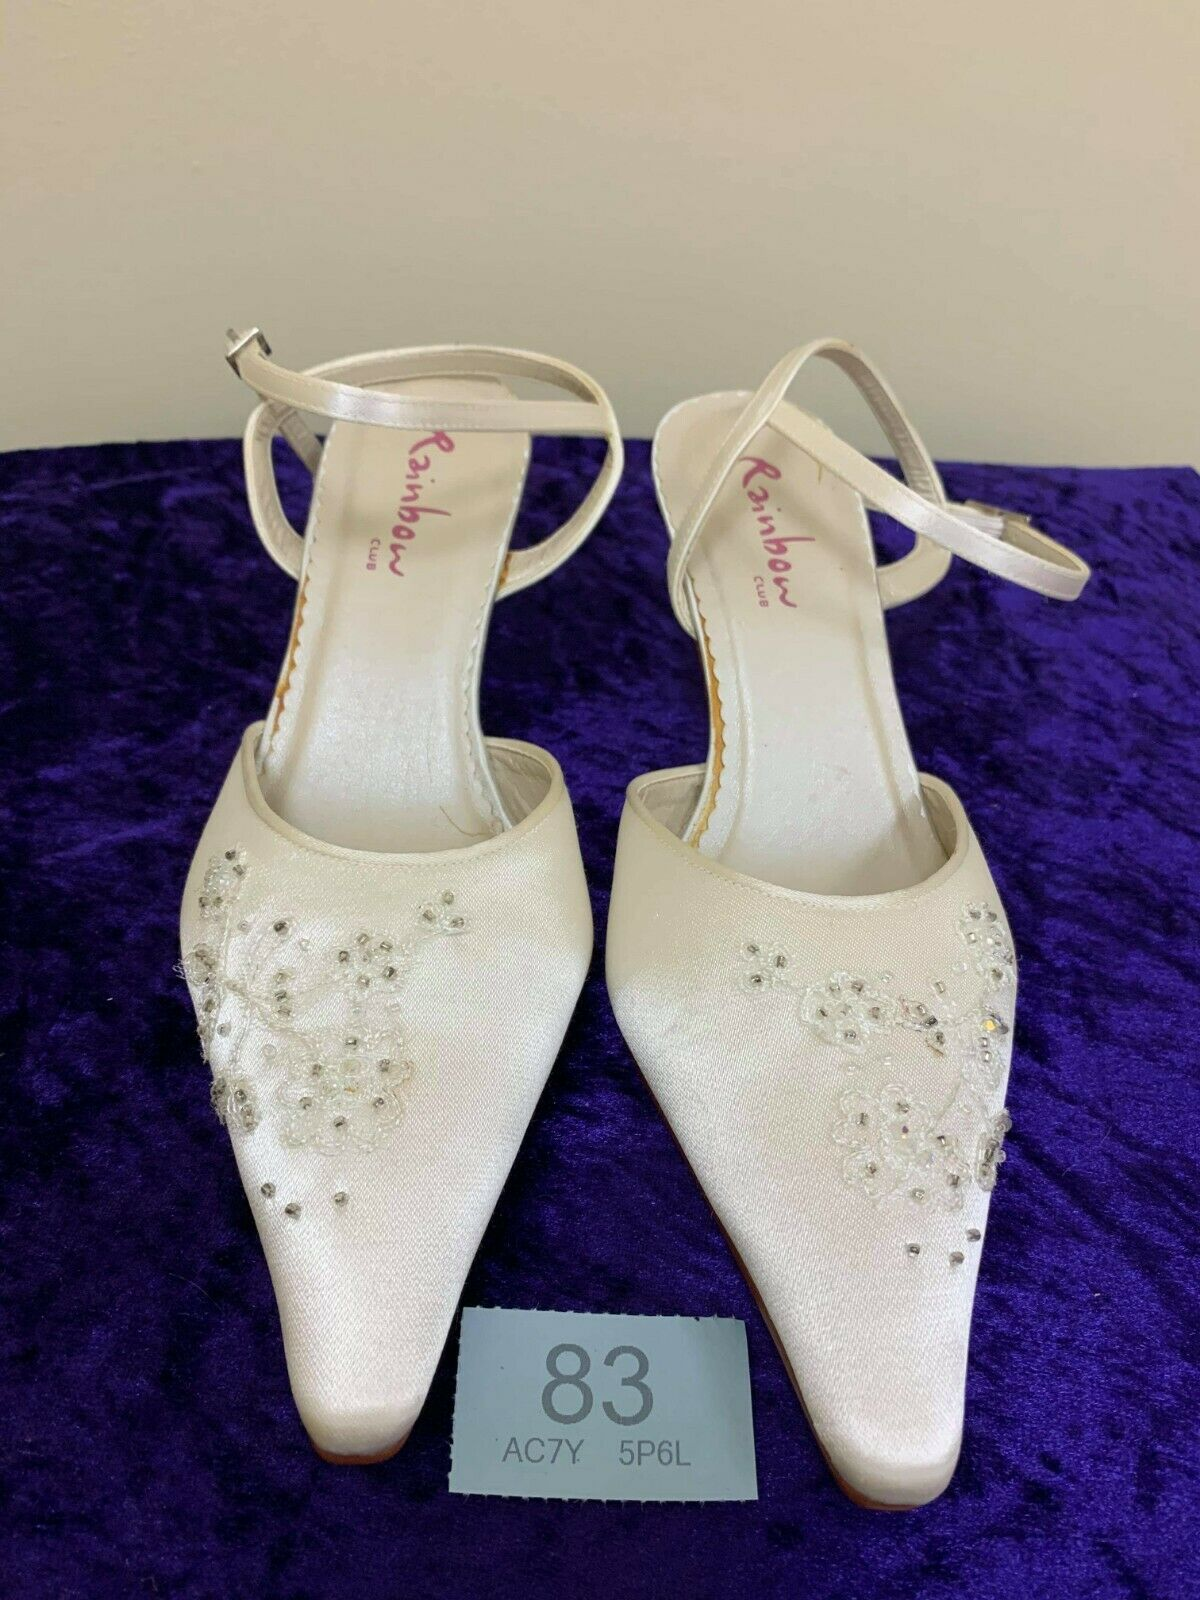 New in box Rainbow Club ivory shoes size 4 Style Florence Code 83